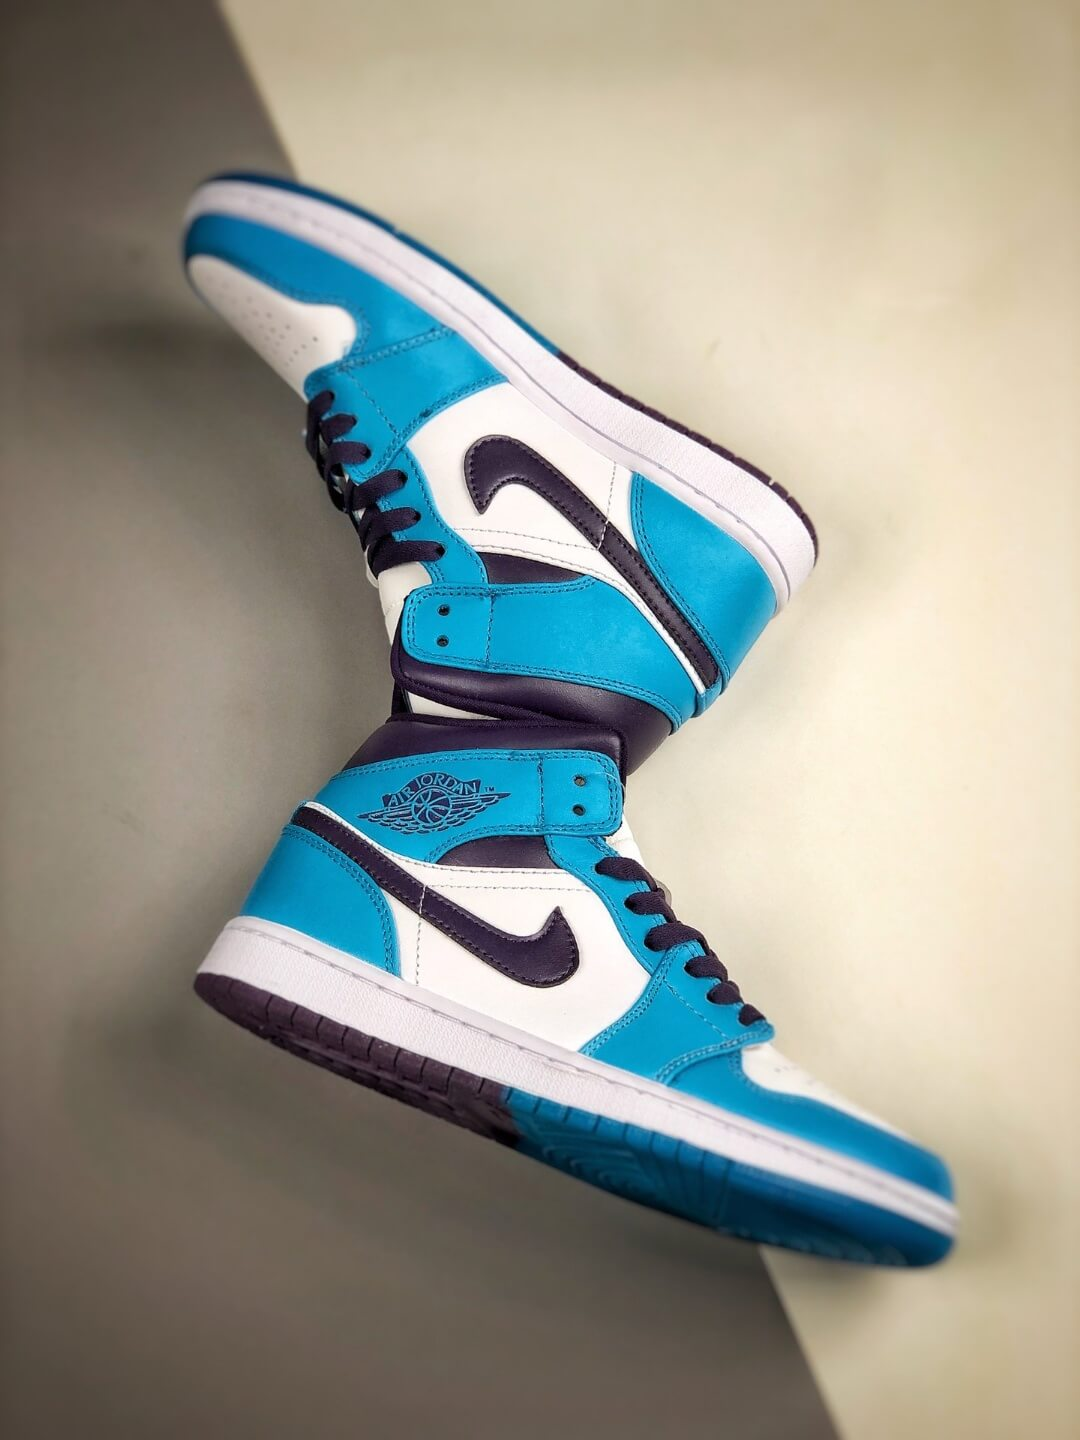 The Air Jordan 1 Mid Hornets Blue Lagoon and Grand Purple Leather Upper Jordan Wings Logo Repsneakers 08